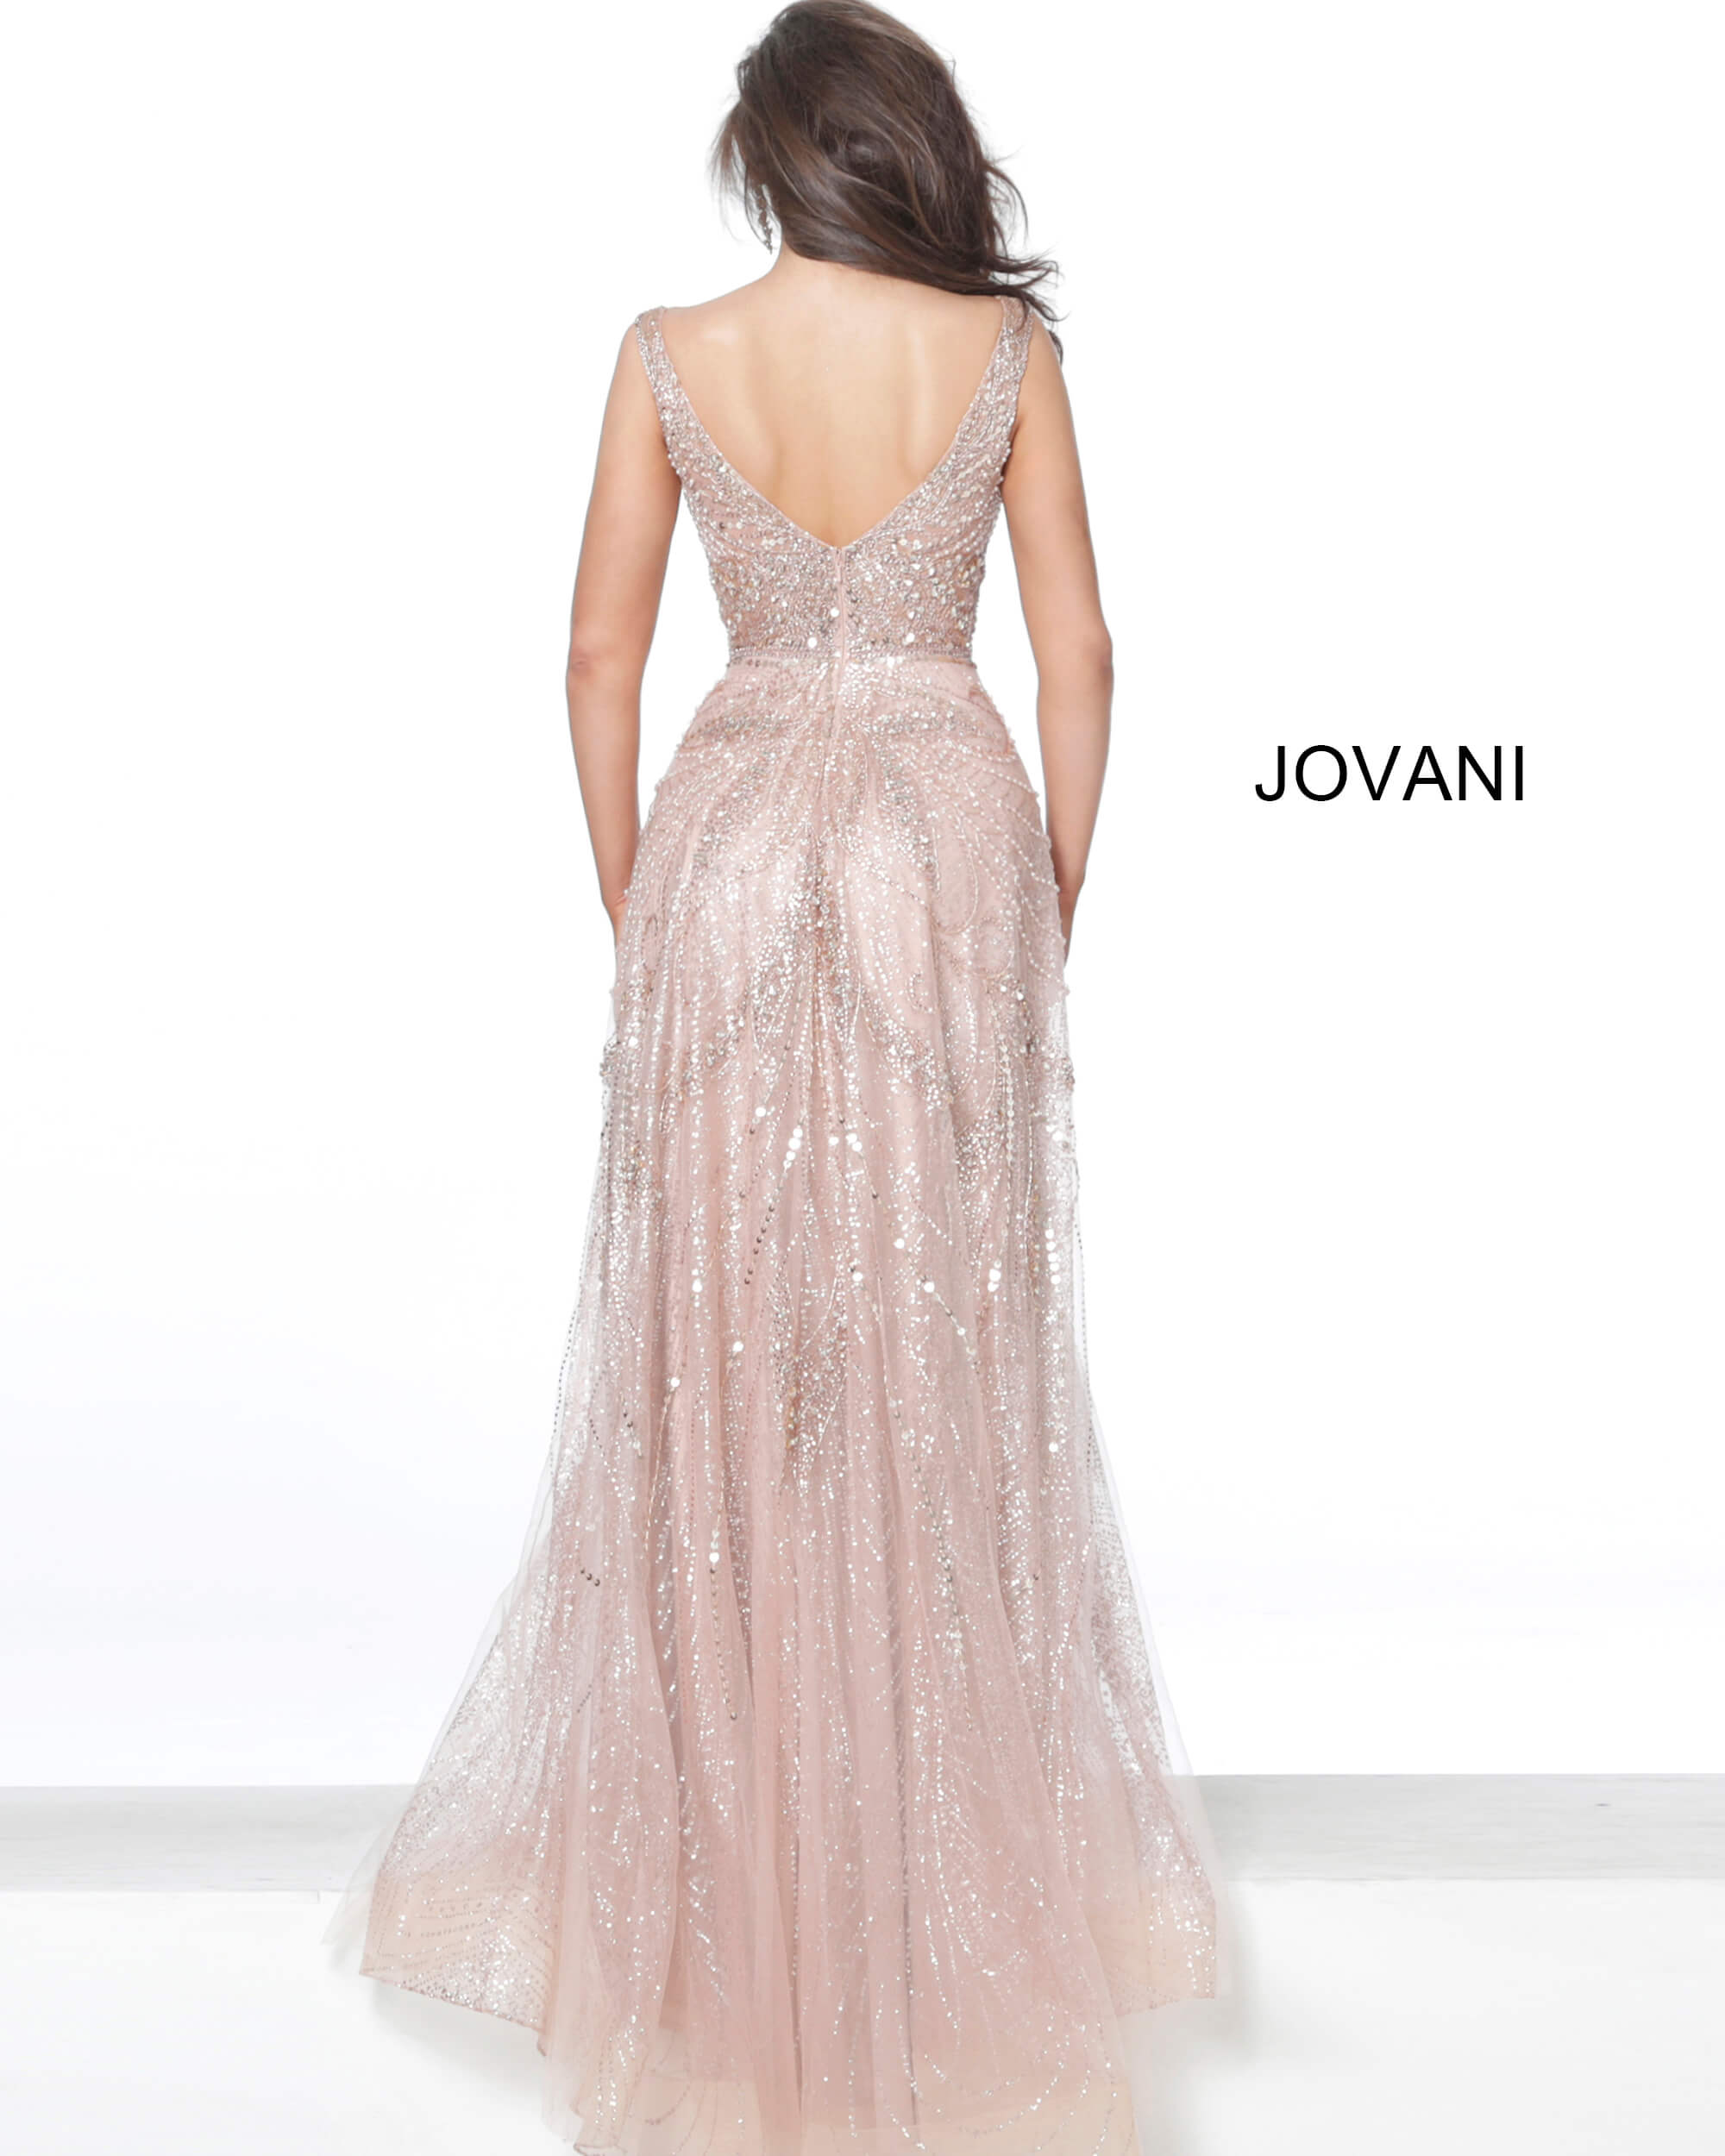 Rose gold V back evening dress Jovani 05339 on mobile 0